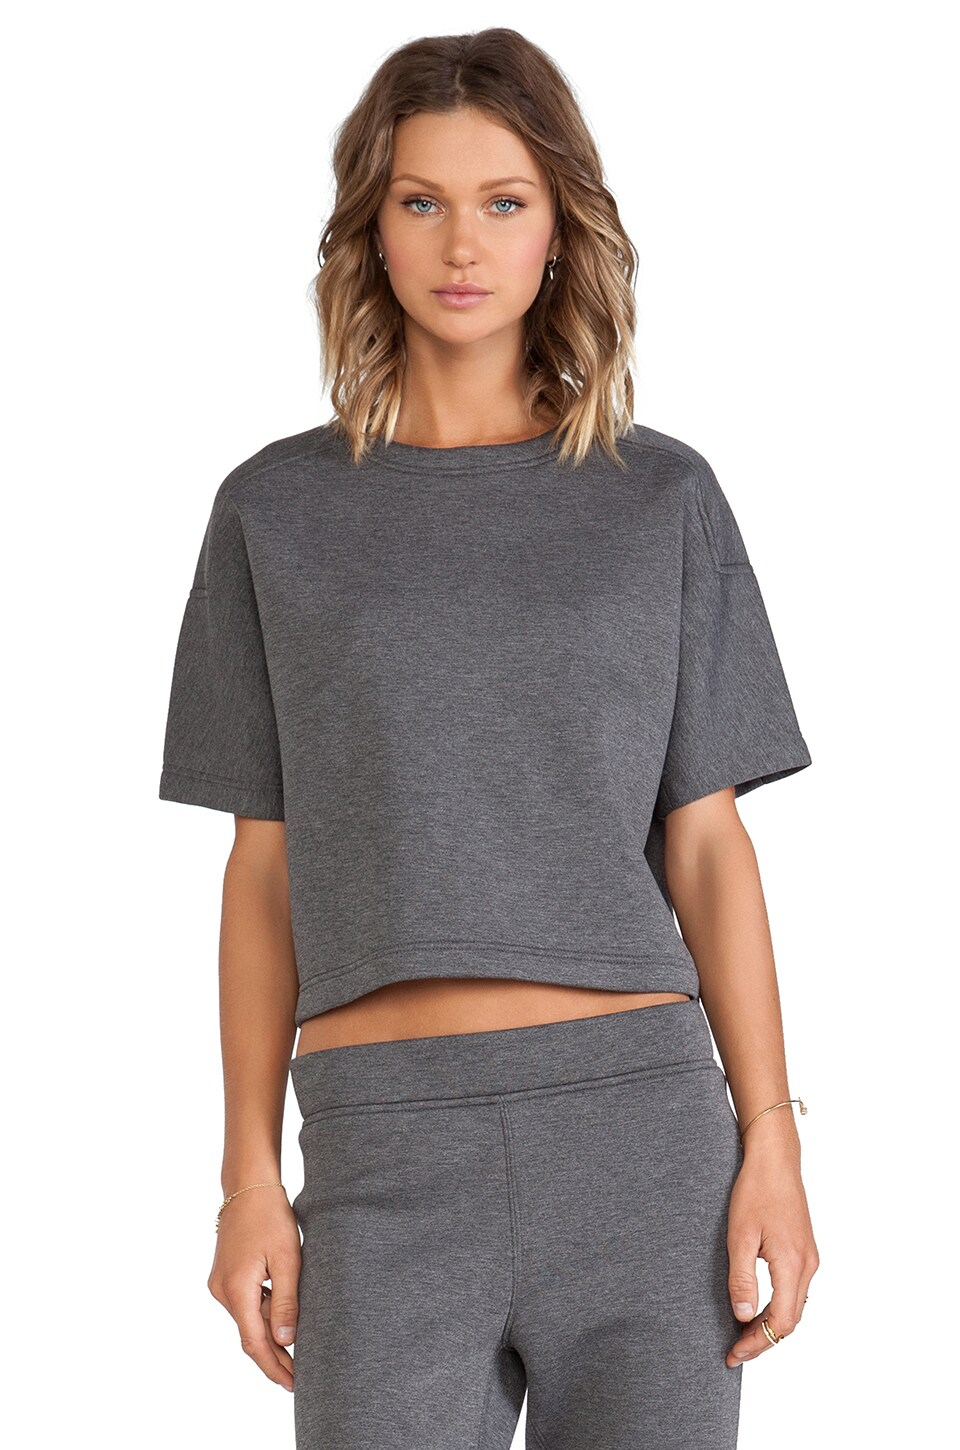 T by Alexander Wang Scuba Short Sleeve Top in Charcoal